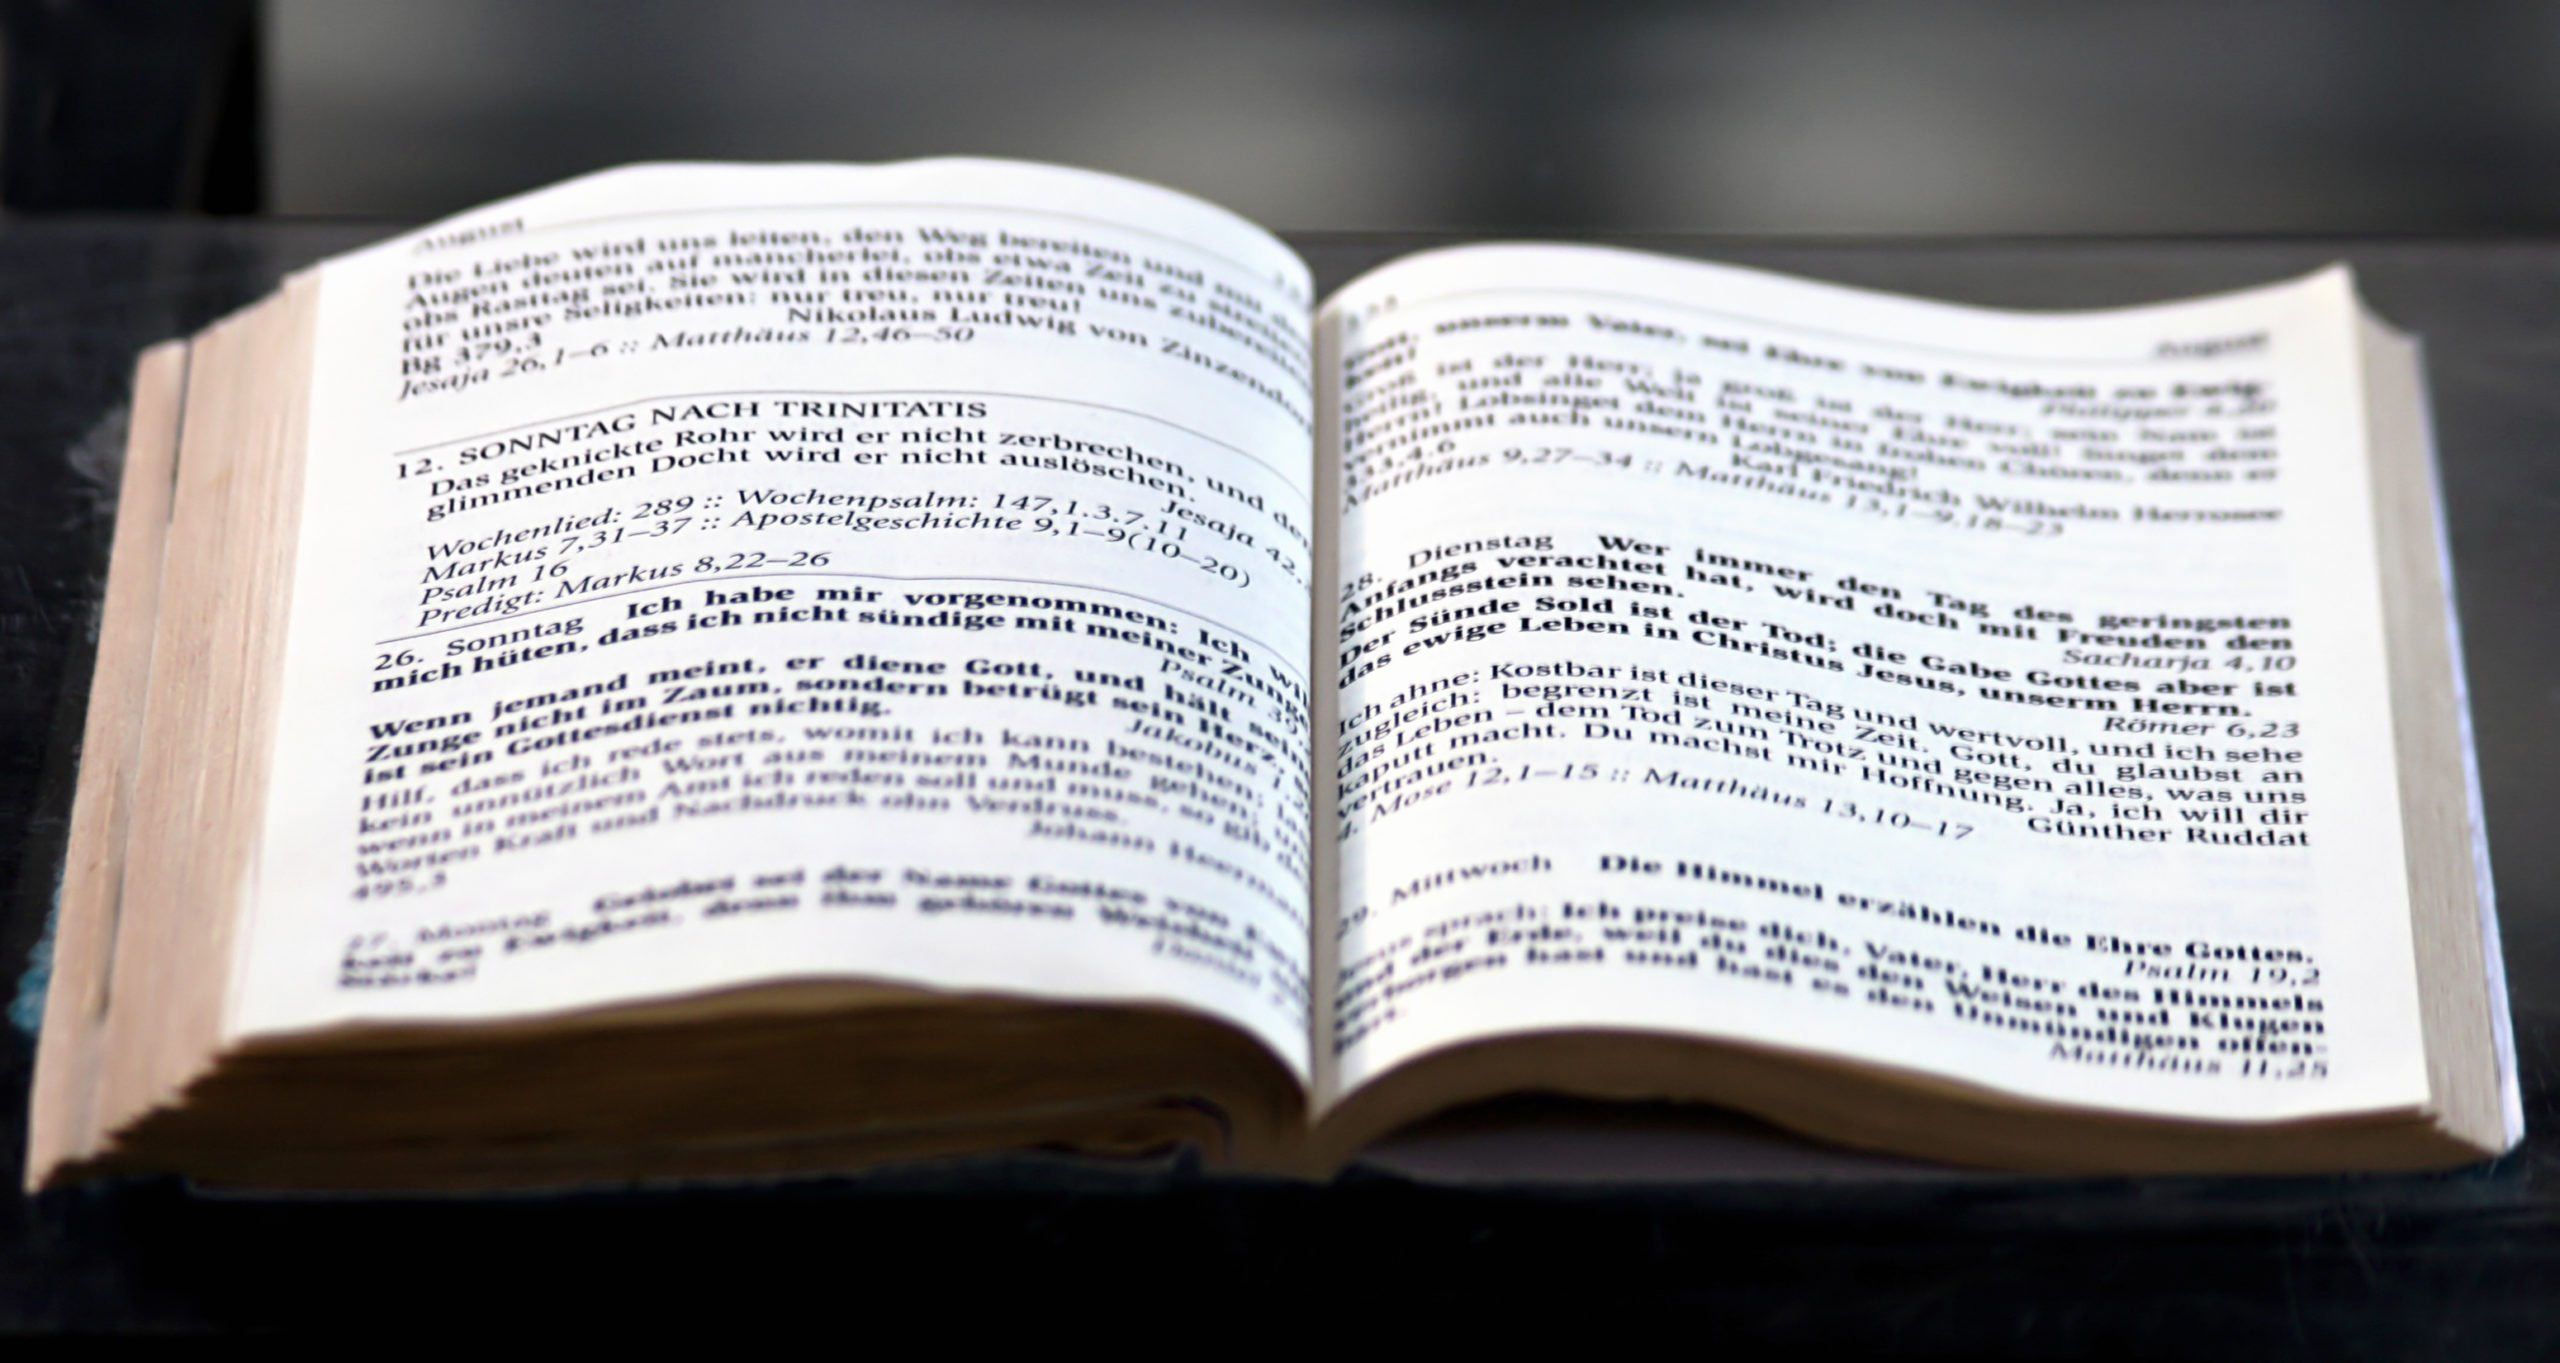 Evaluating the Book of Mormon